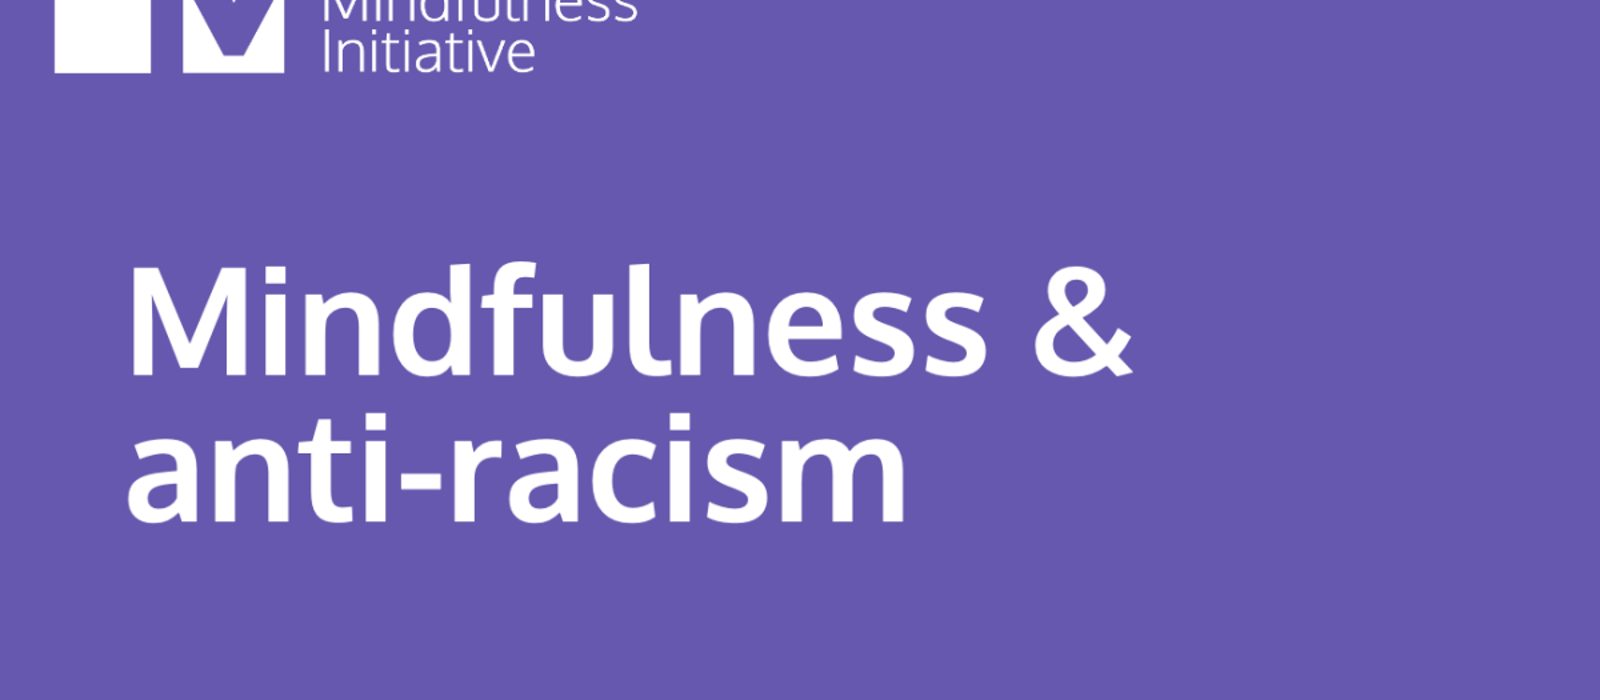 Mindfulness & anti-racism resources